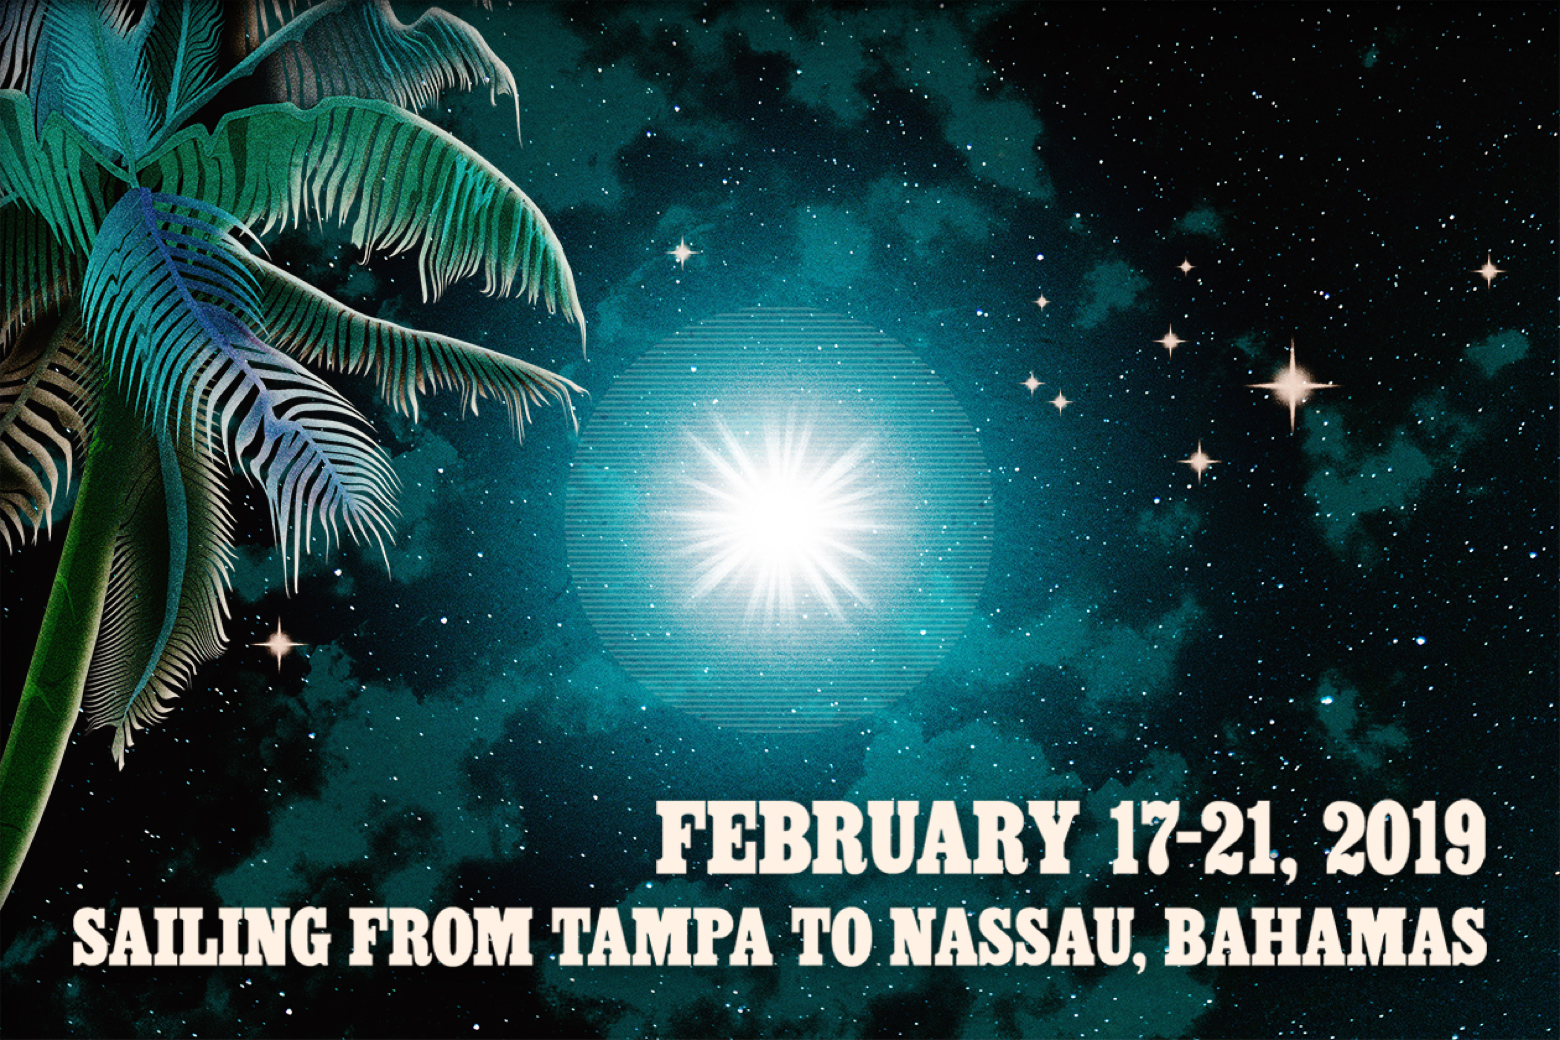 February 17-21,2019. Sailing from Tampa to Nassau, Bahamas